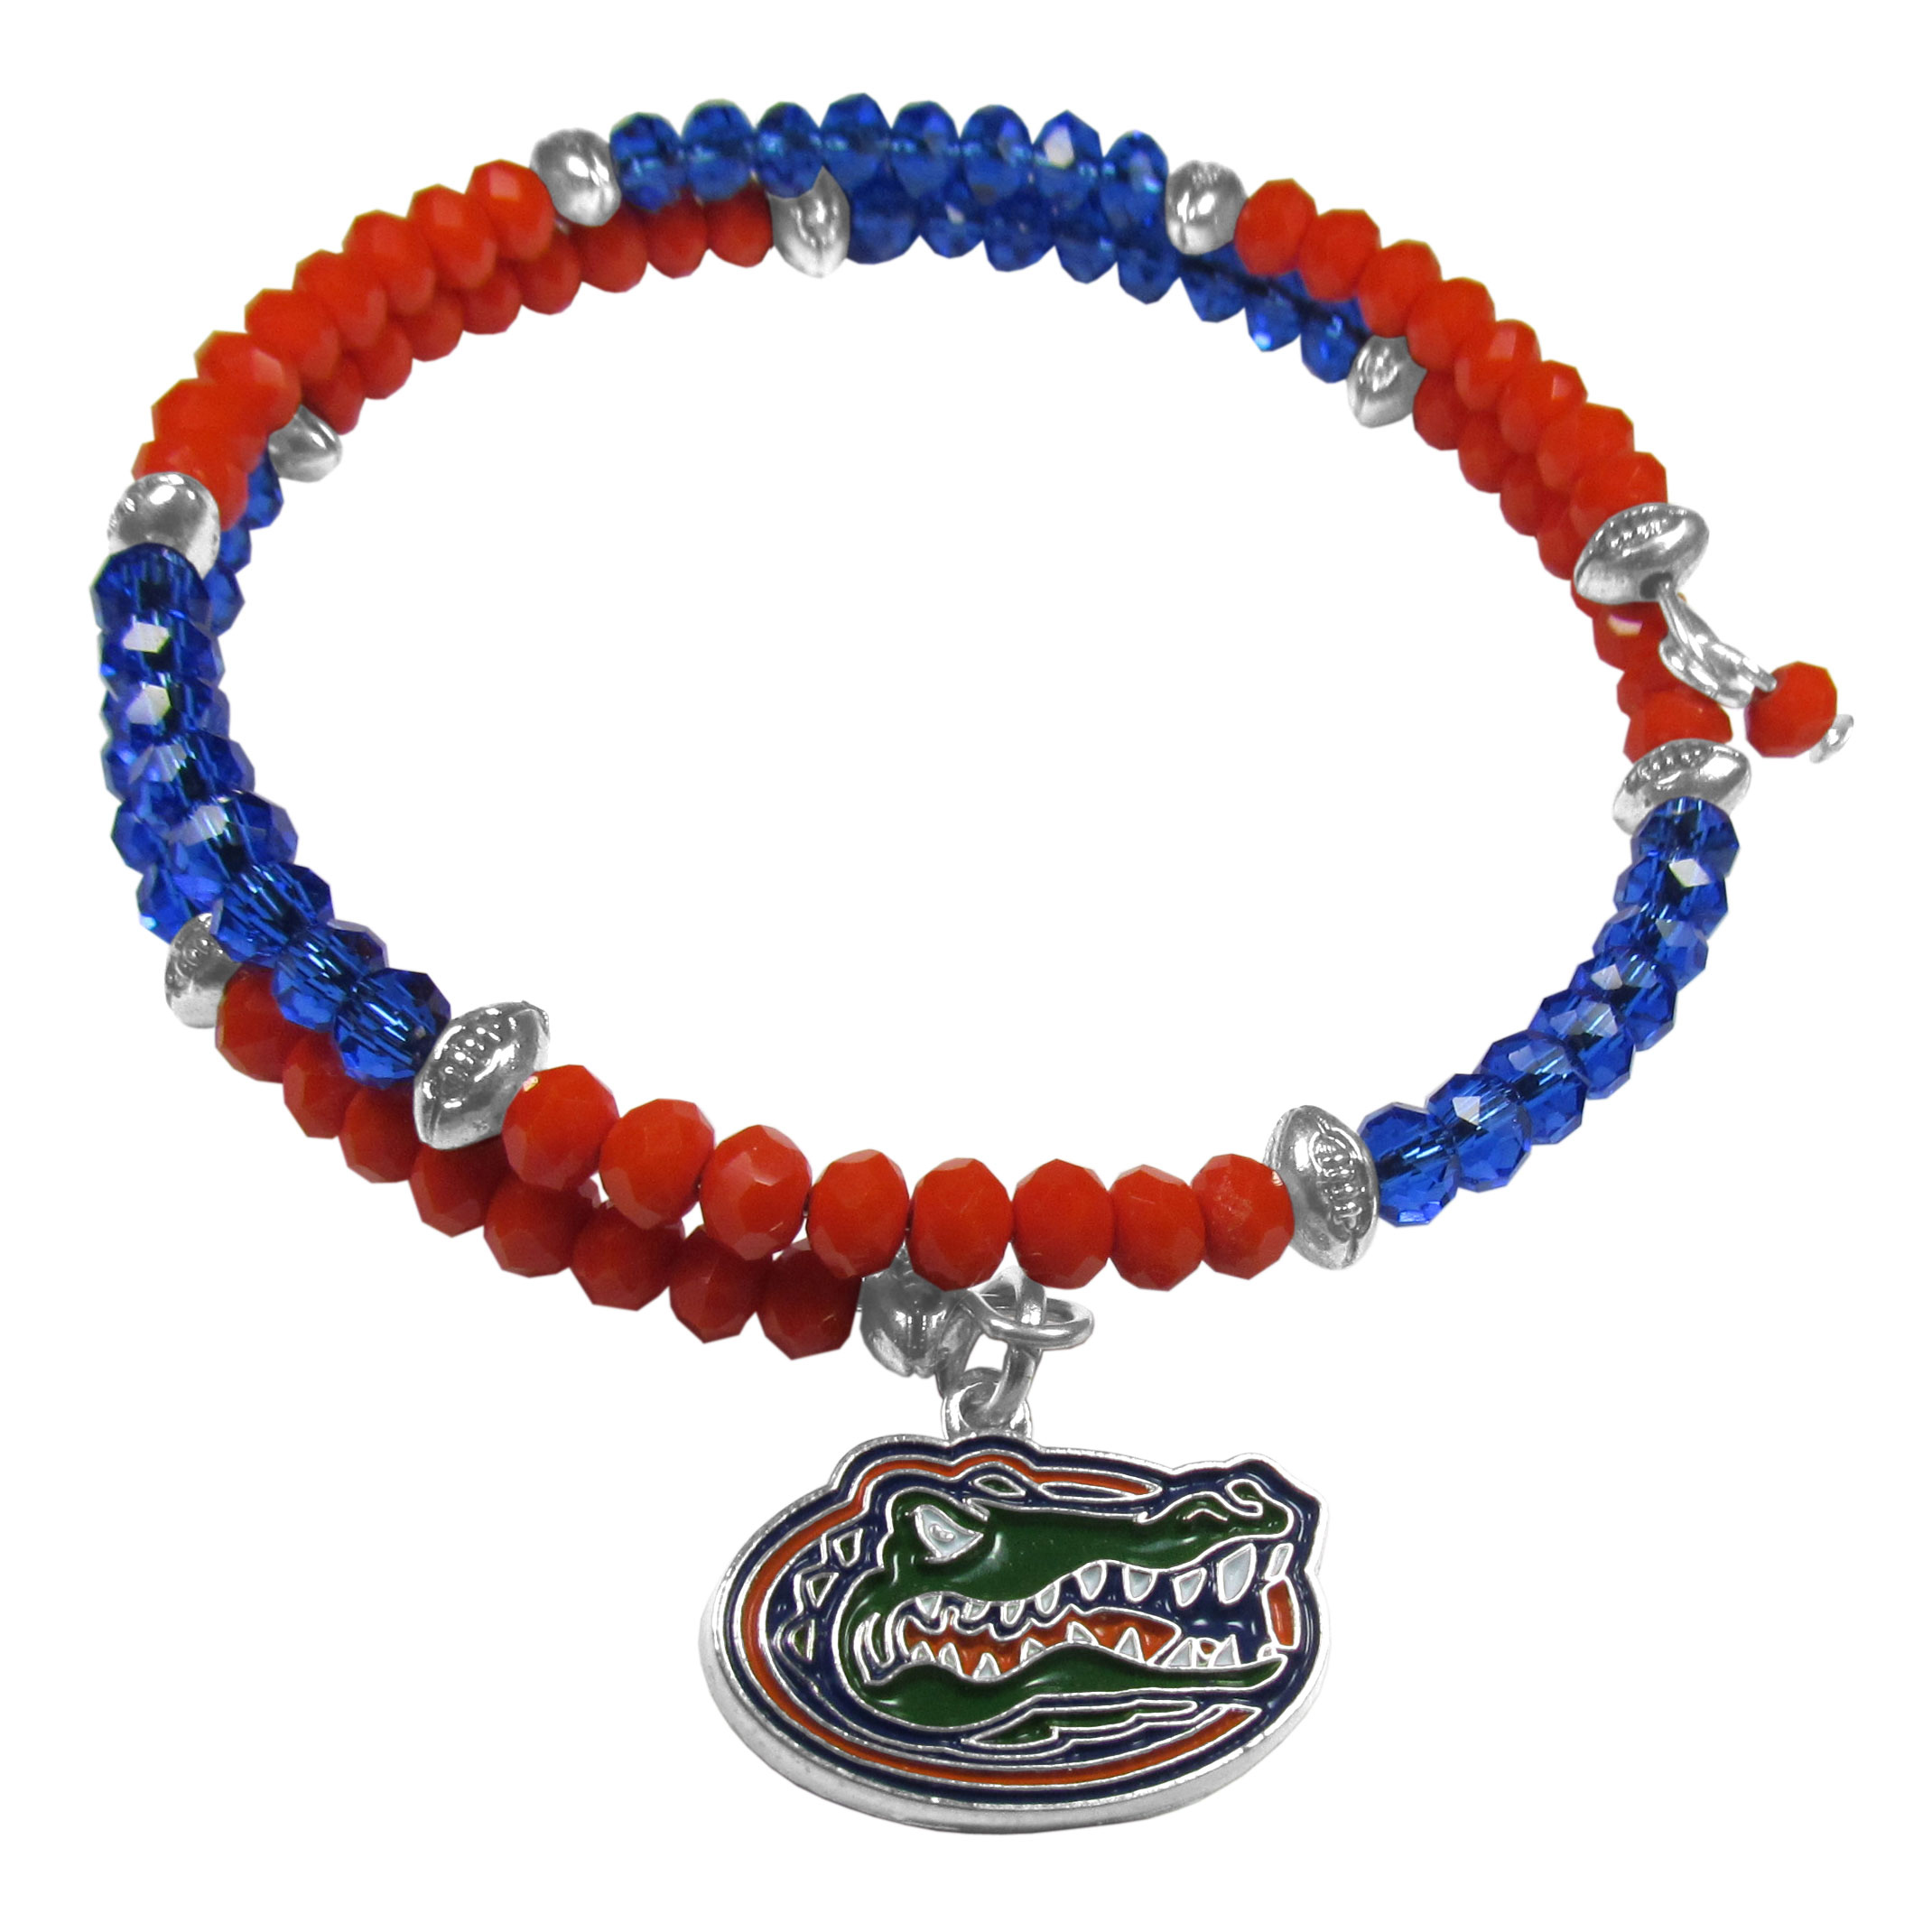 Florida Gators Crystal Memory Wire Bracelet - Our Florida Gators memory wire crystal bracelet is trendy way to show off your love of the game. The double wrap bracelet is completely covered in 4 mm crystals that are broken up with adorable football beads creating a designer look with a sporty twist. The bracelet features a fully cast, metal team charm that has expertly enameled team colors. This fashion jewelry piece is a must-have for the die-hard fan with chic style.